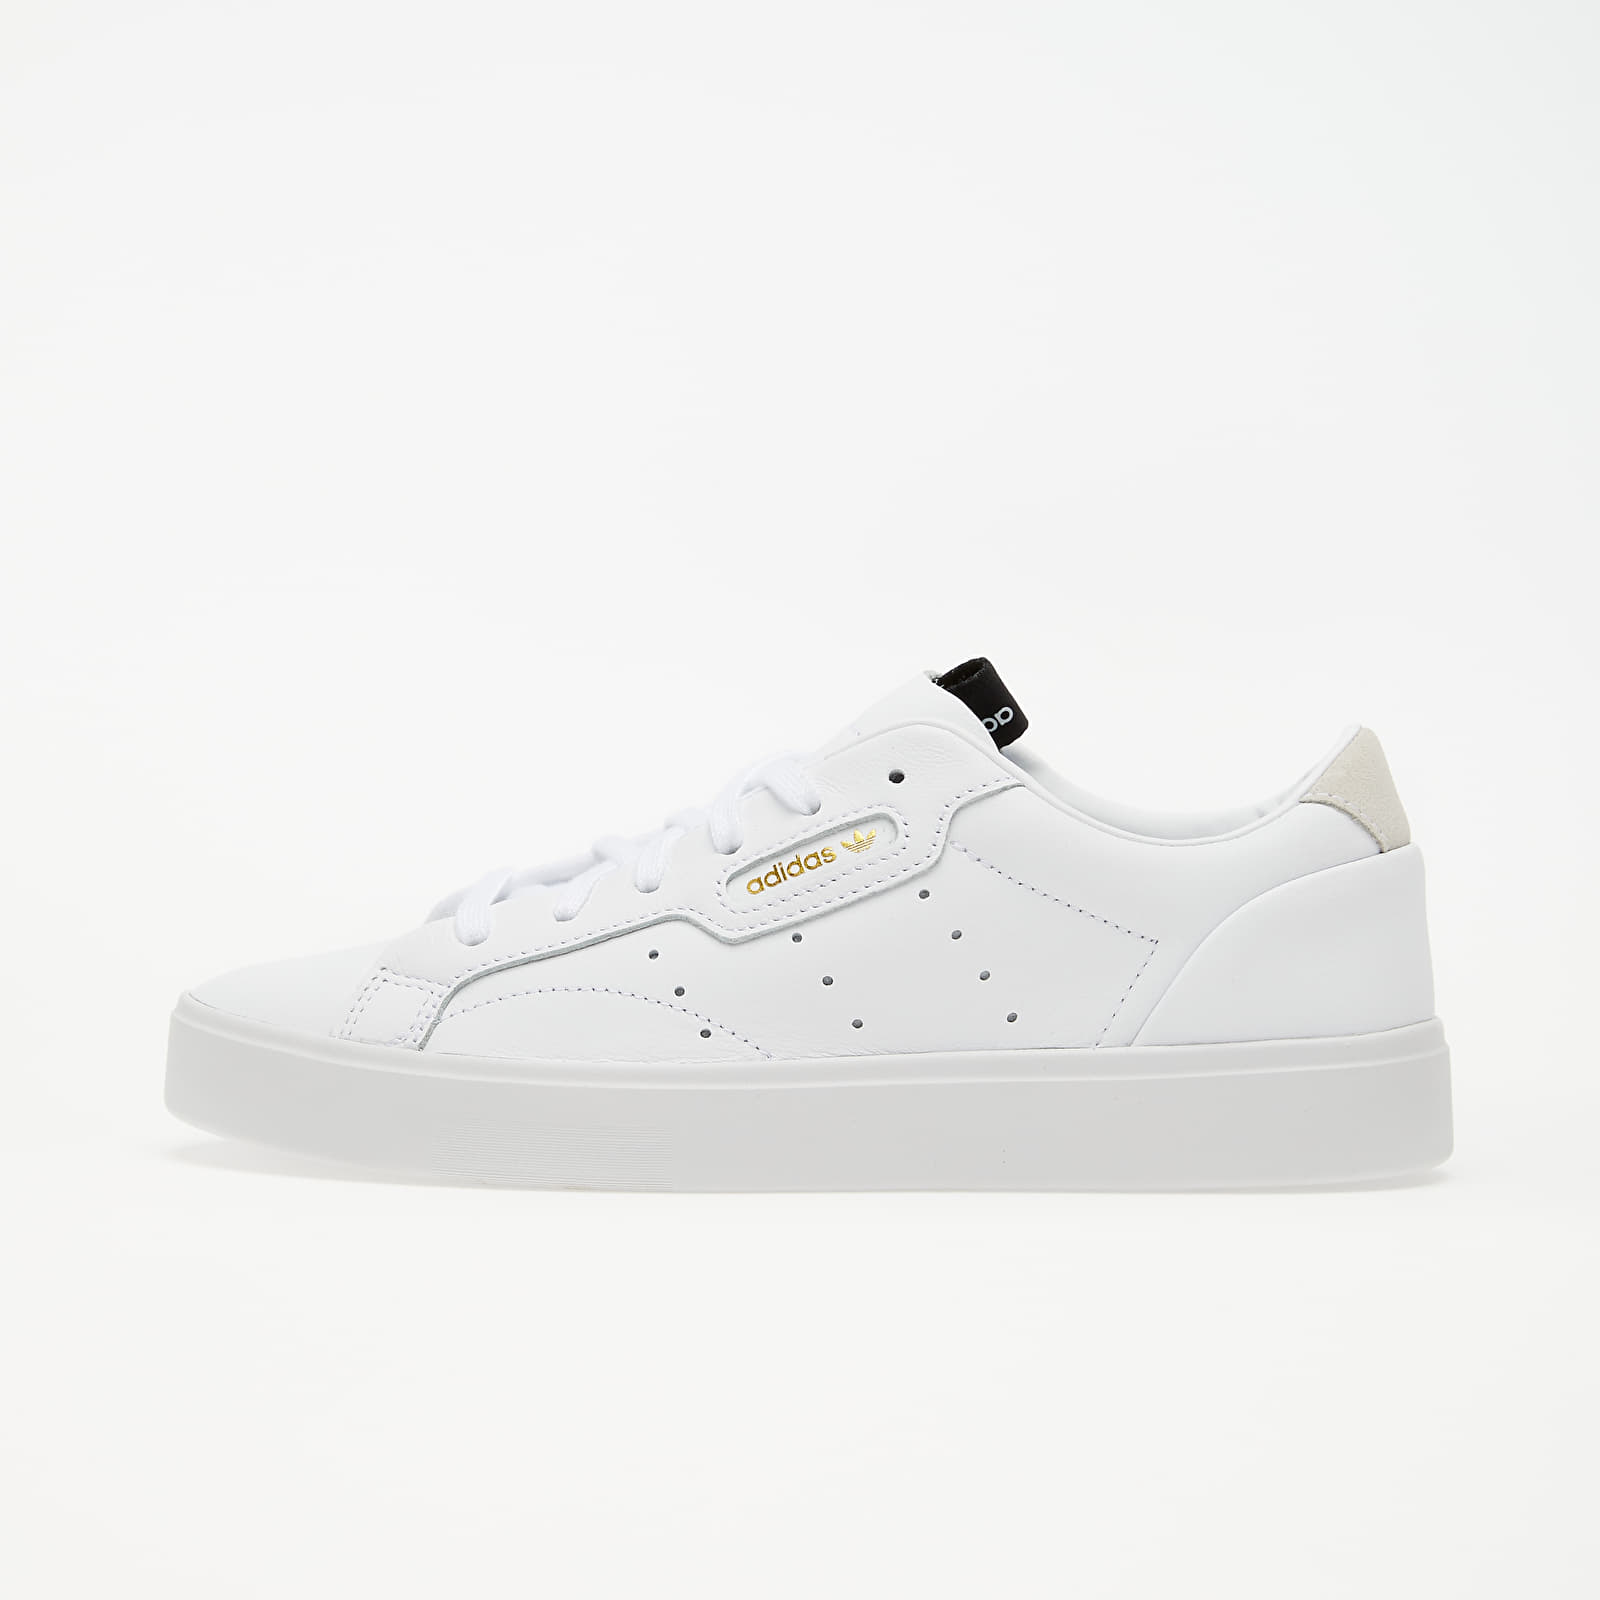 Chaussures et baskets femme adidas Sleek W Ftw White/ Ftw White/ Crystal White